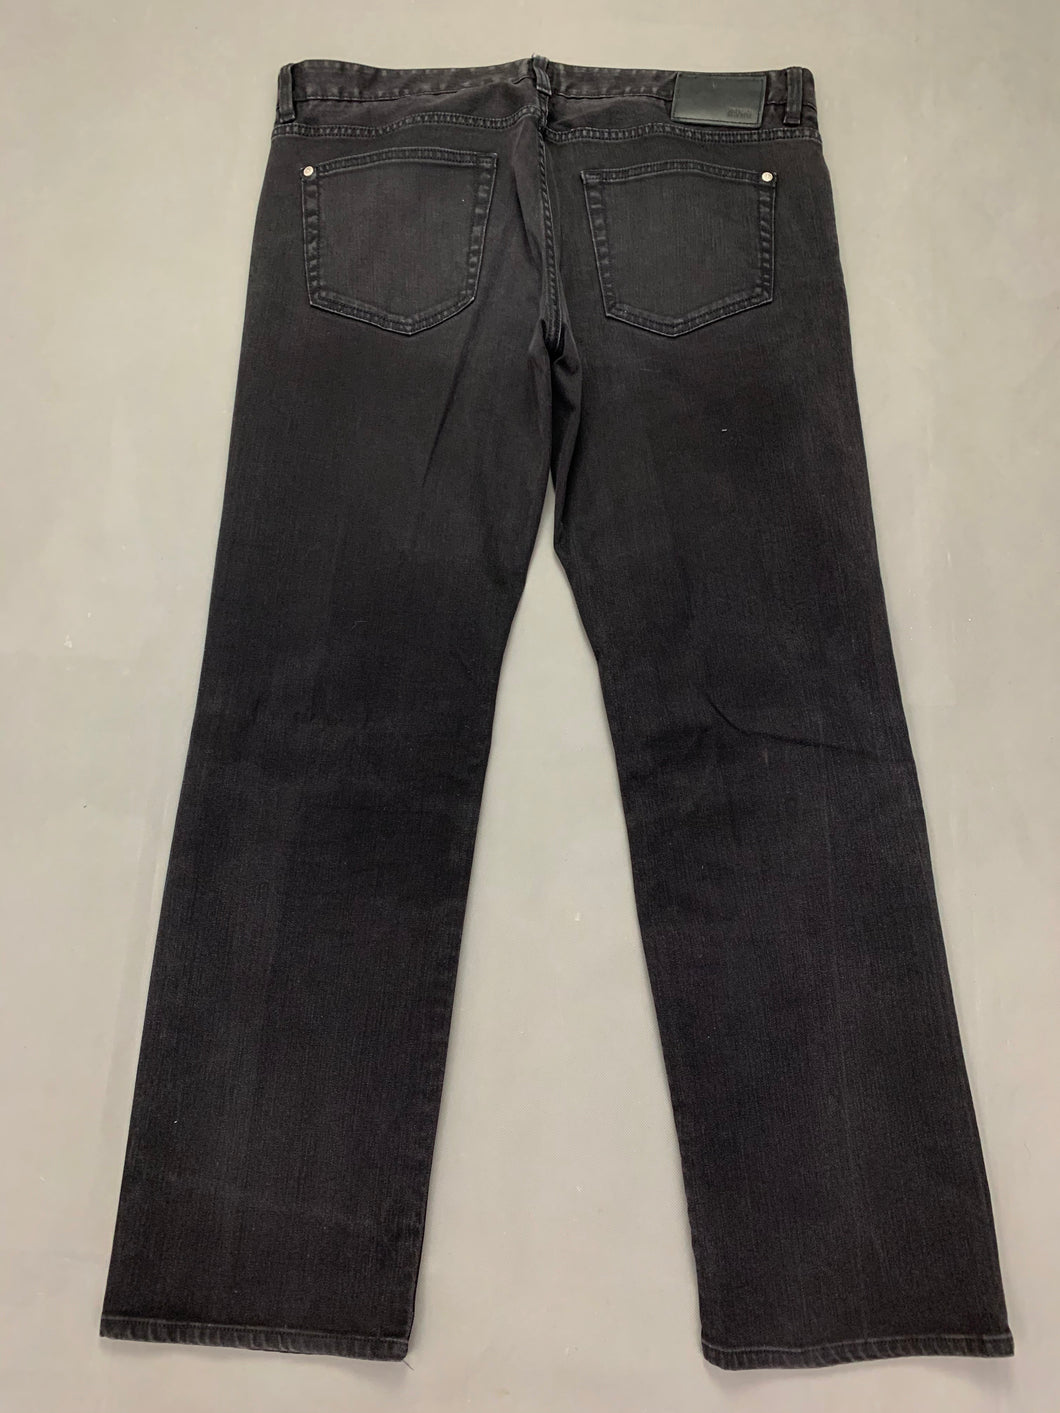 HUGO BOSS Mens KANSAS Black Denim Regular Fit JEANS Size Waist 38